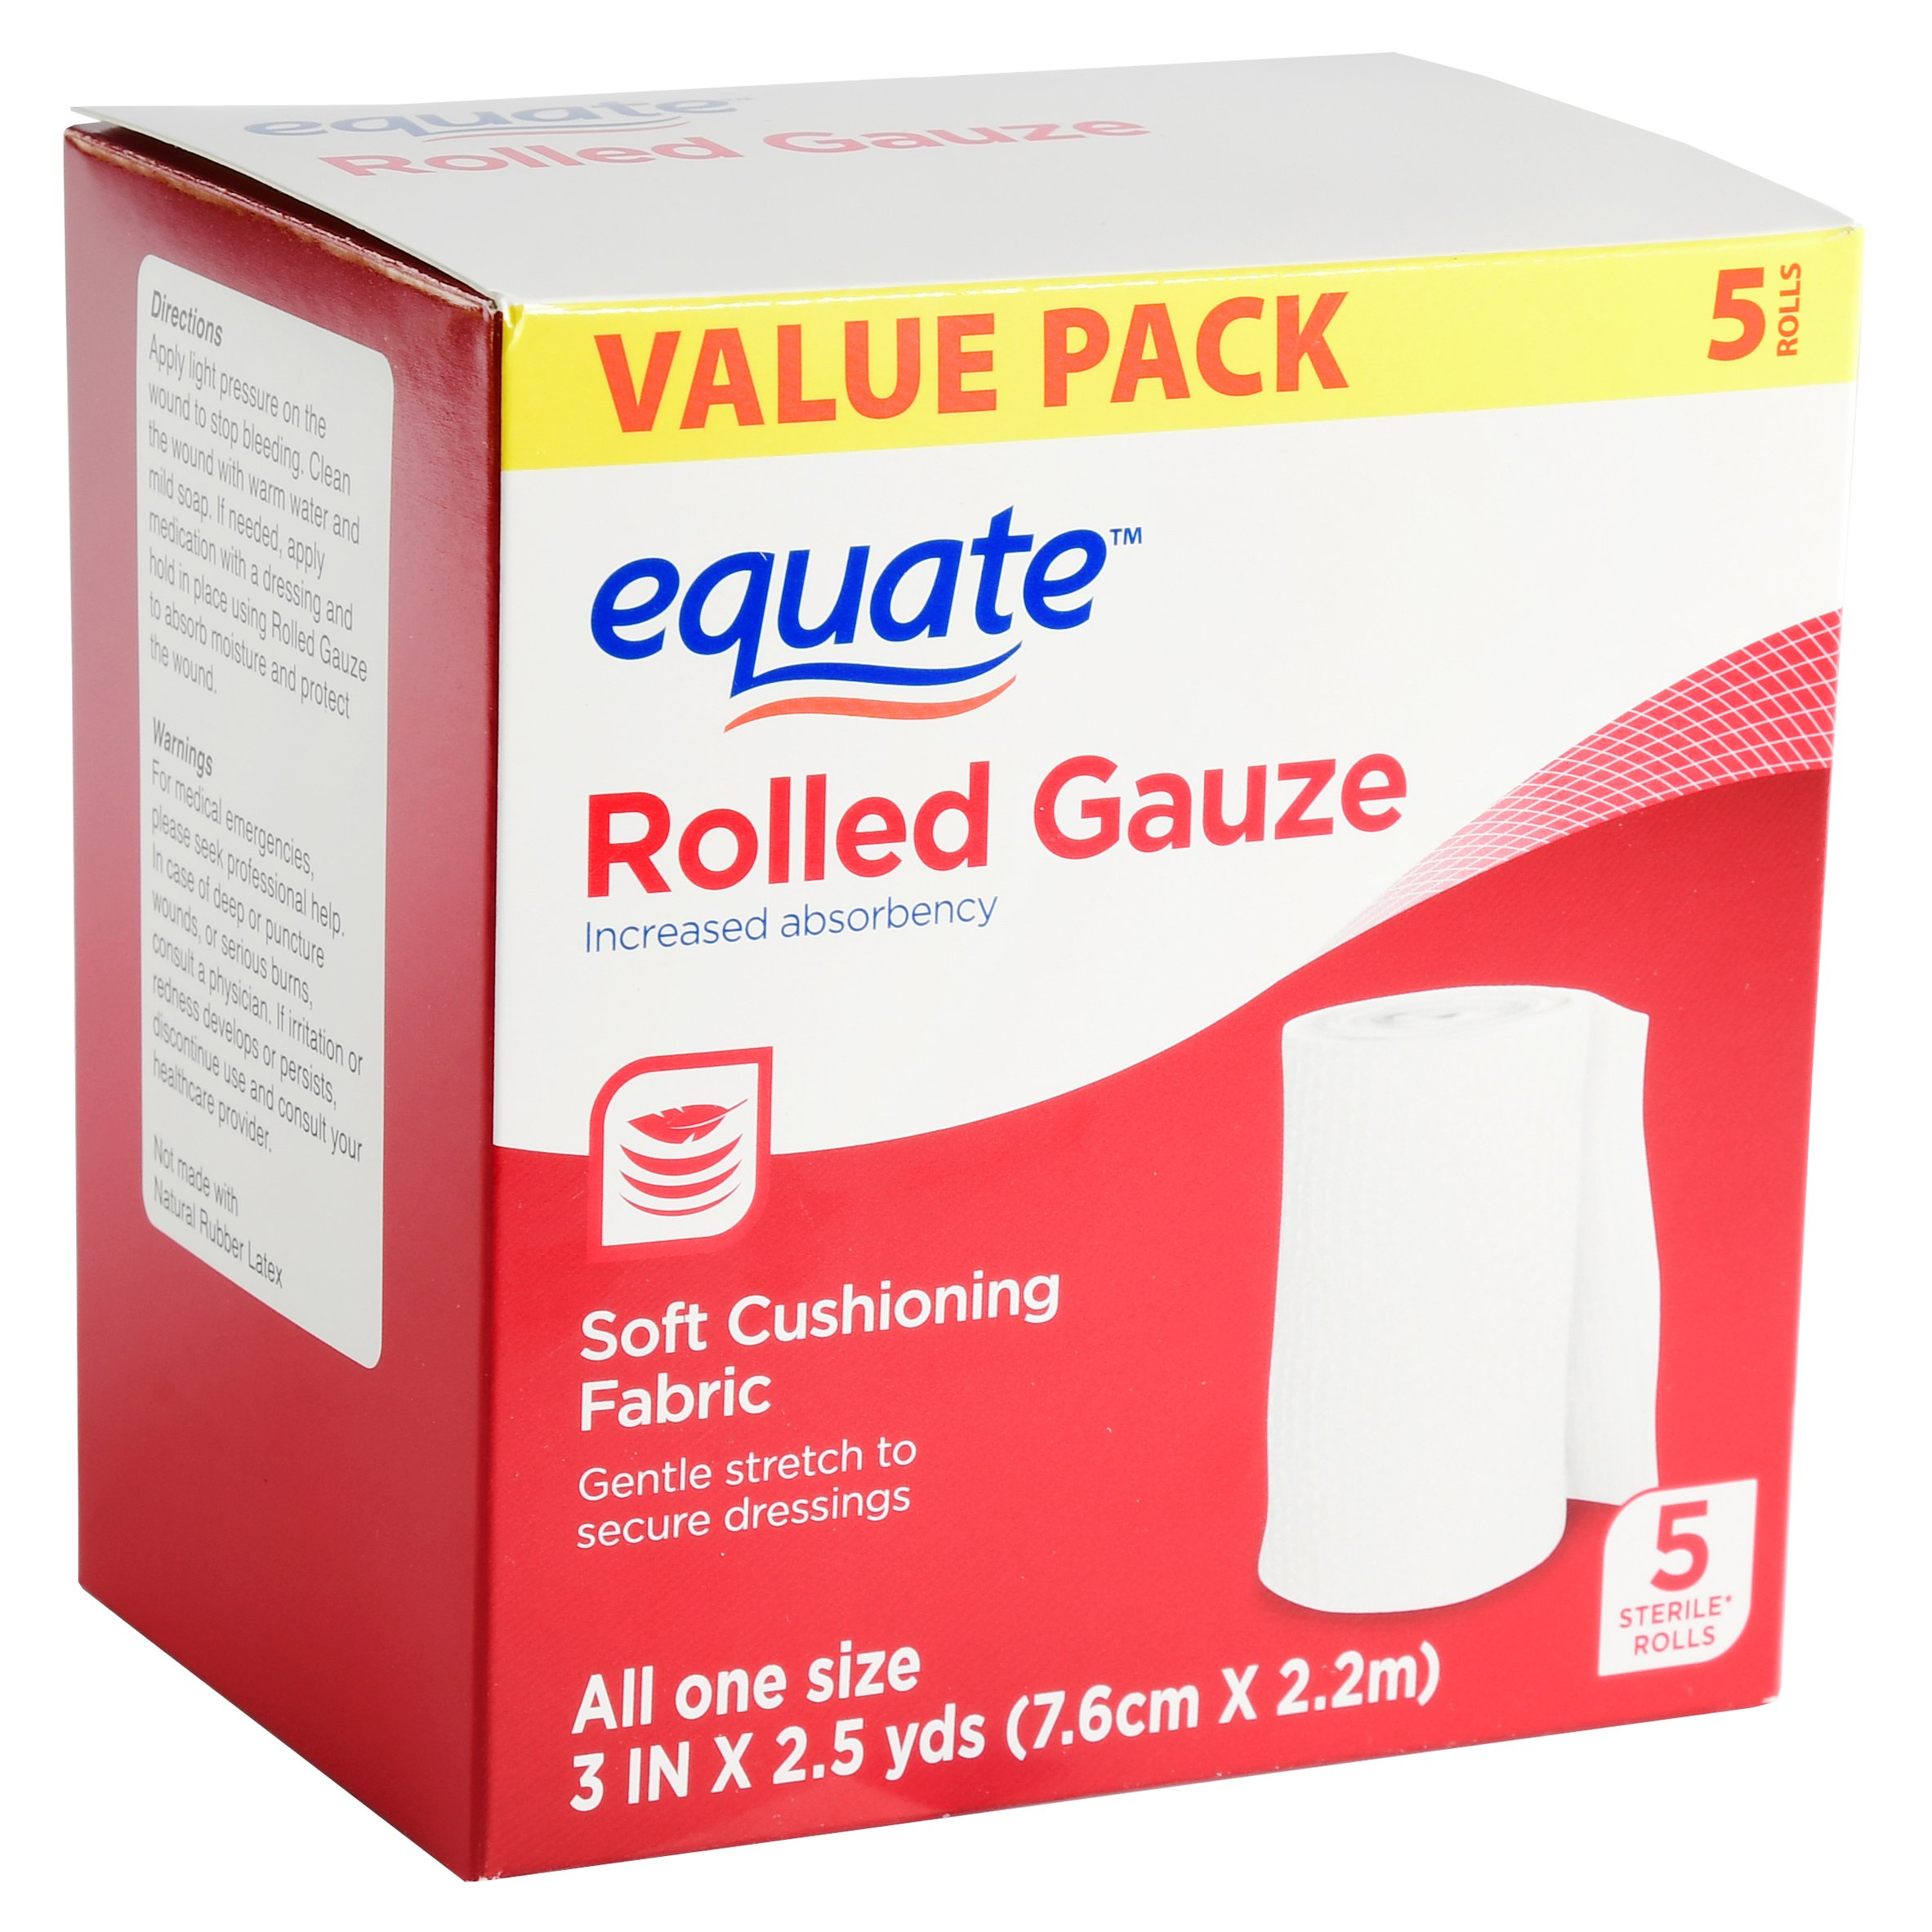 Equate Rolled Gauze, Value Pack, 5 Ct